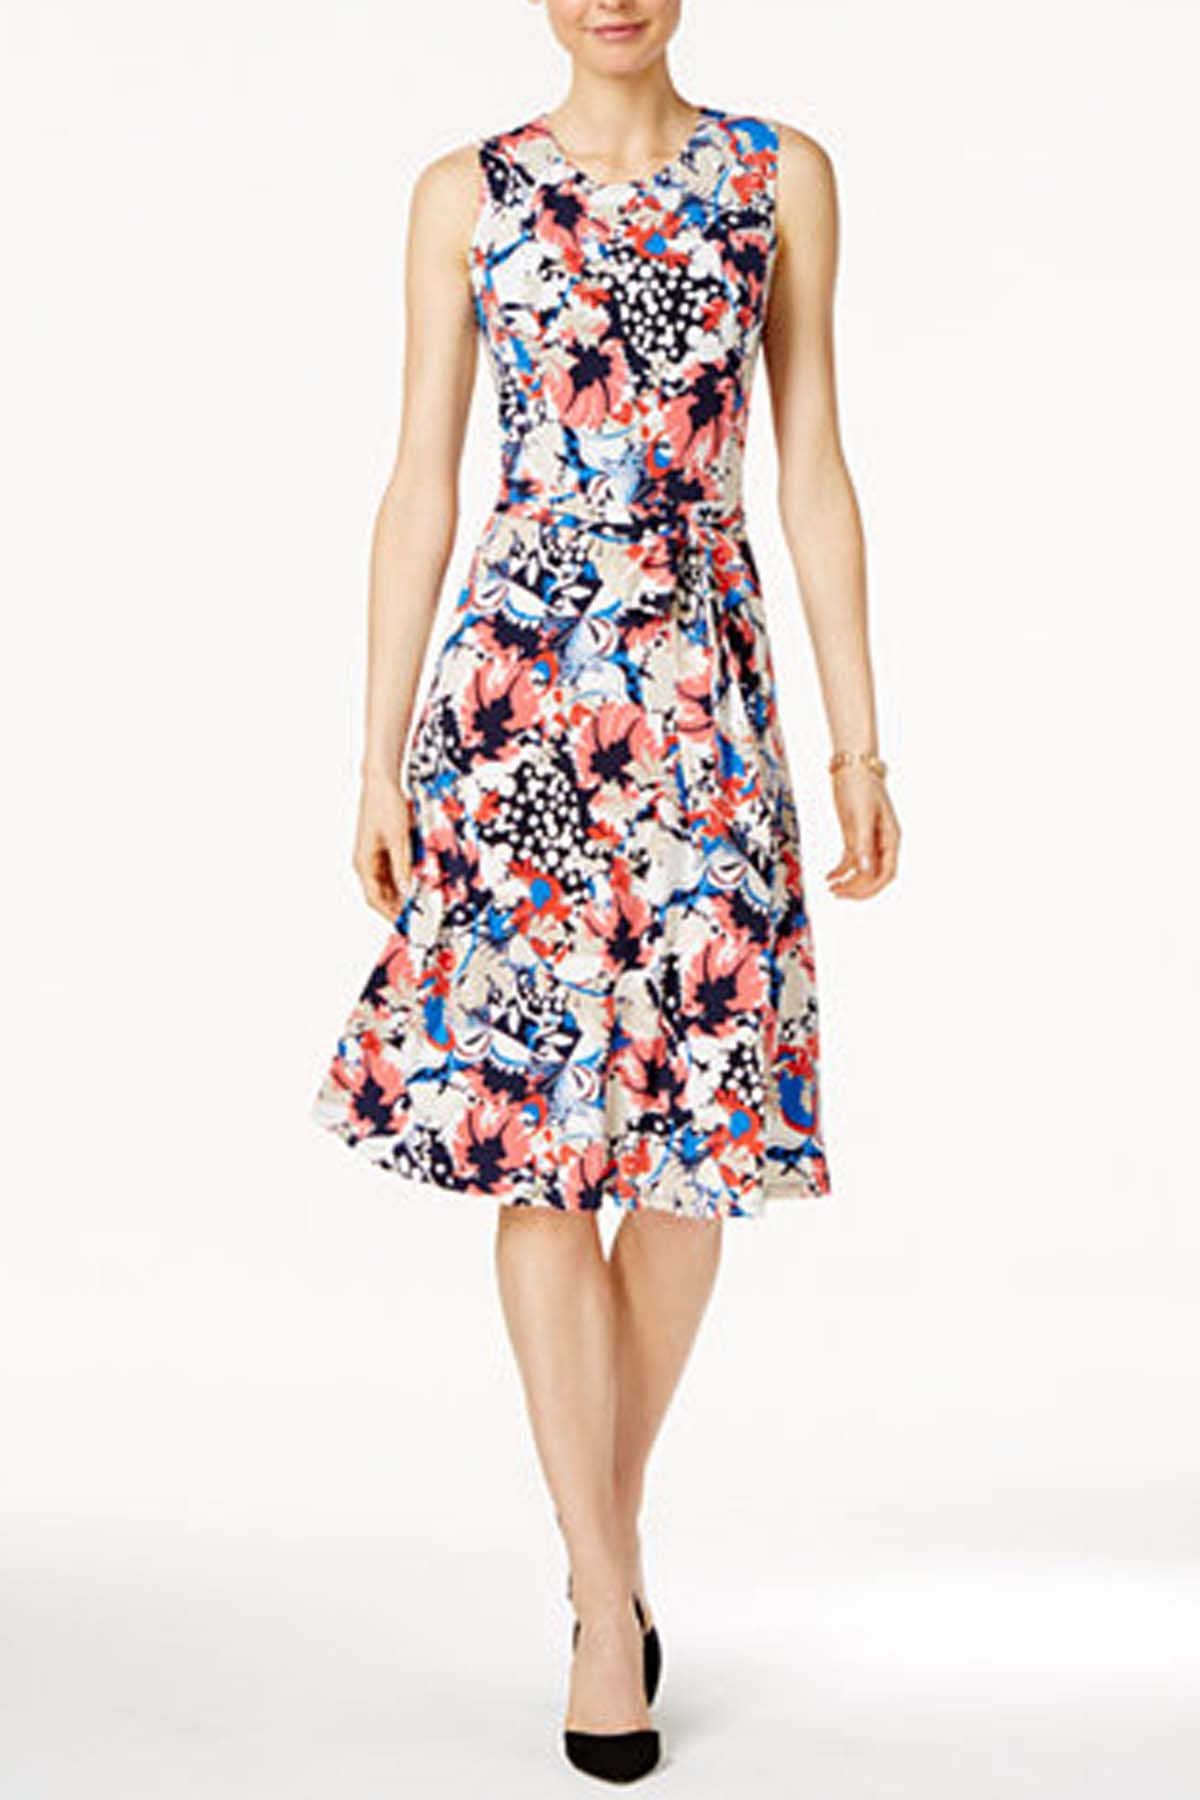 f6eff16dc9f08 14 Stunning Easter Dresses for Women That Cost Less Than $100 ...